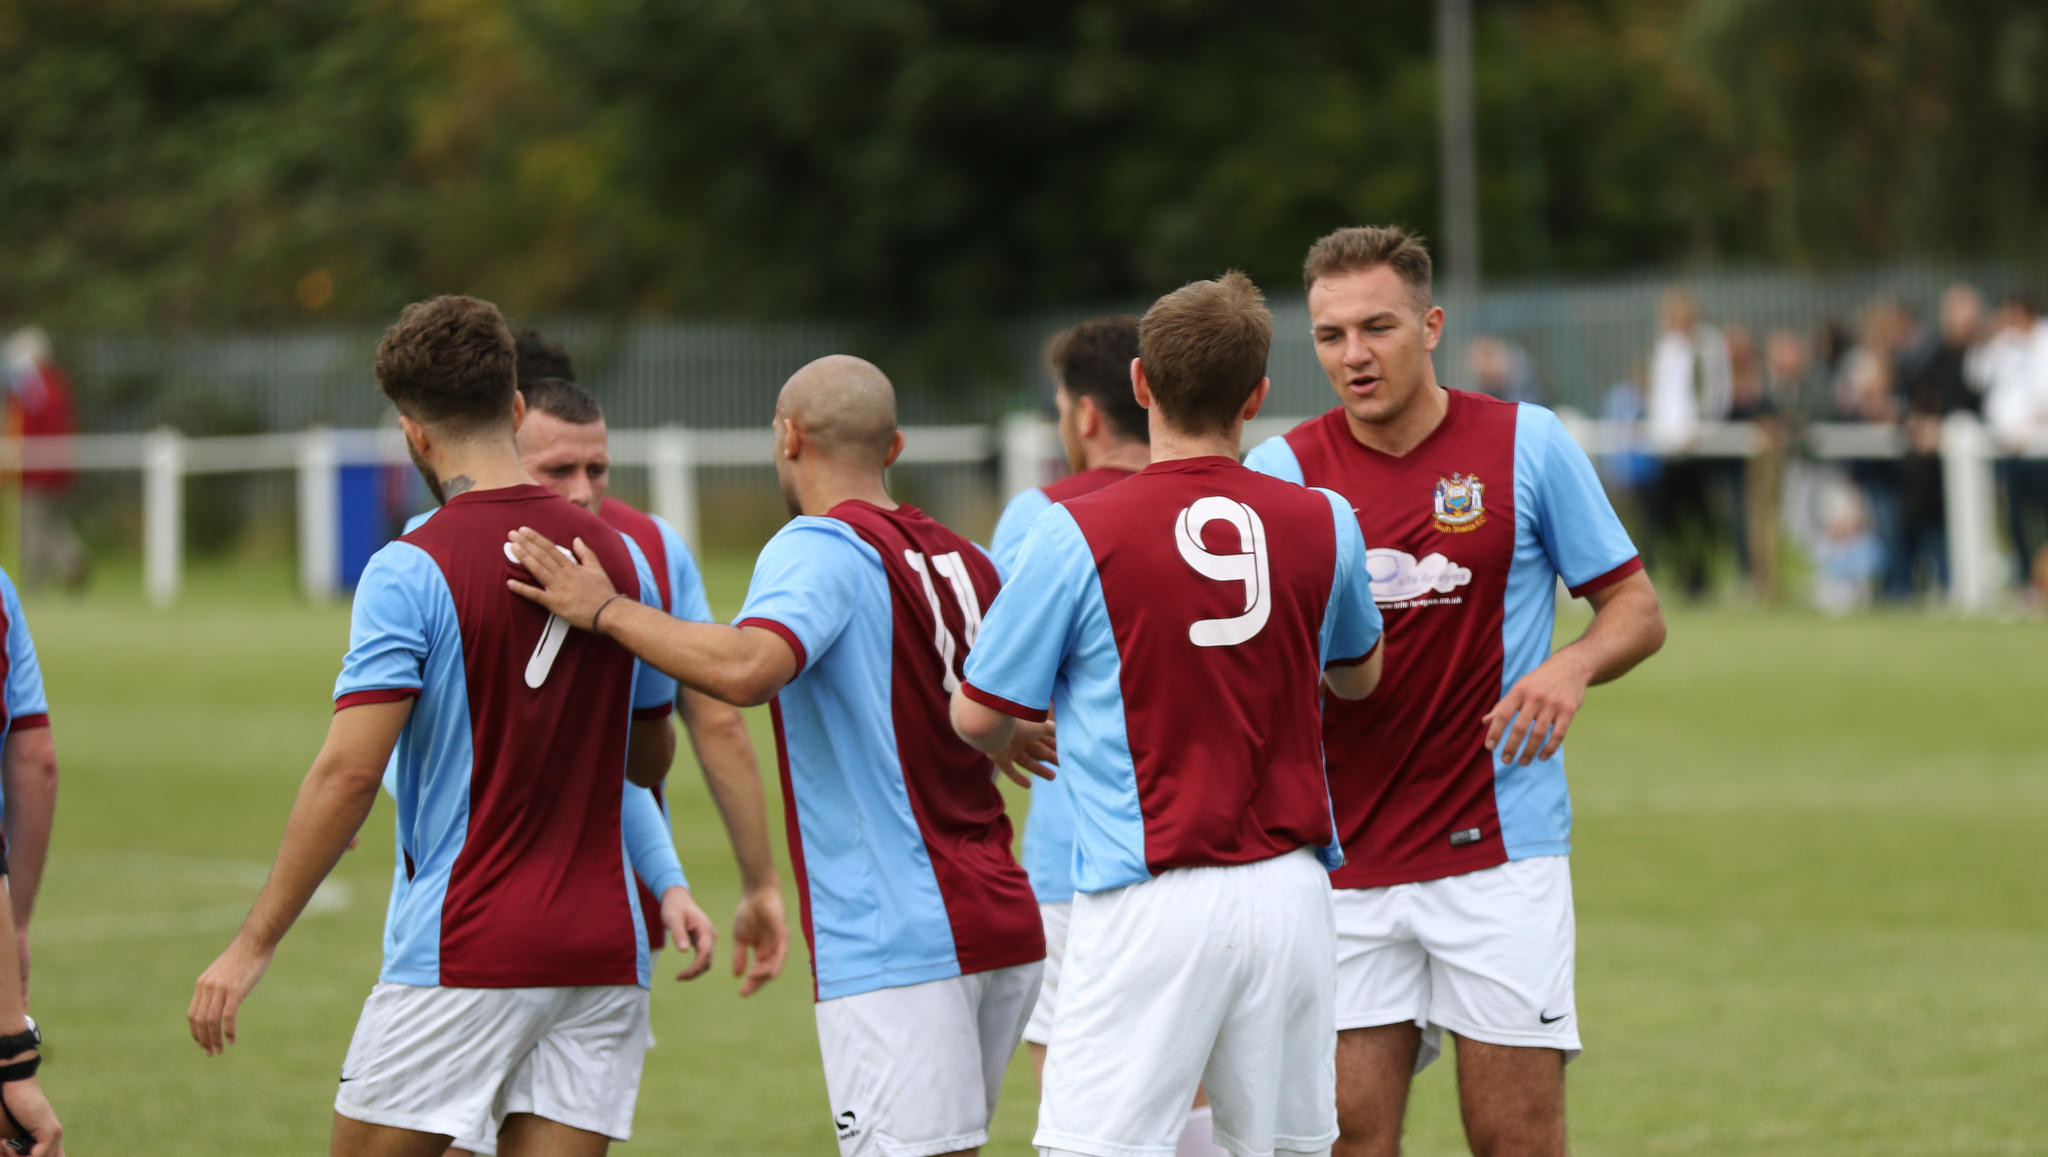 Preview: South Shields vs Washington